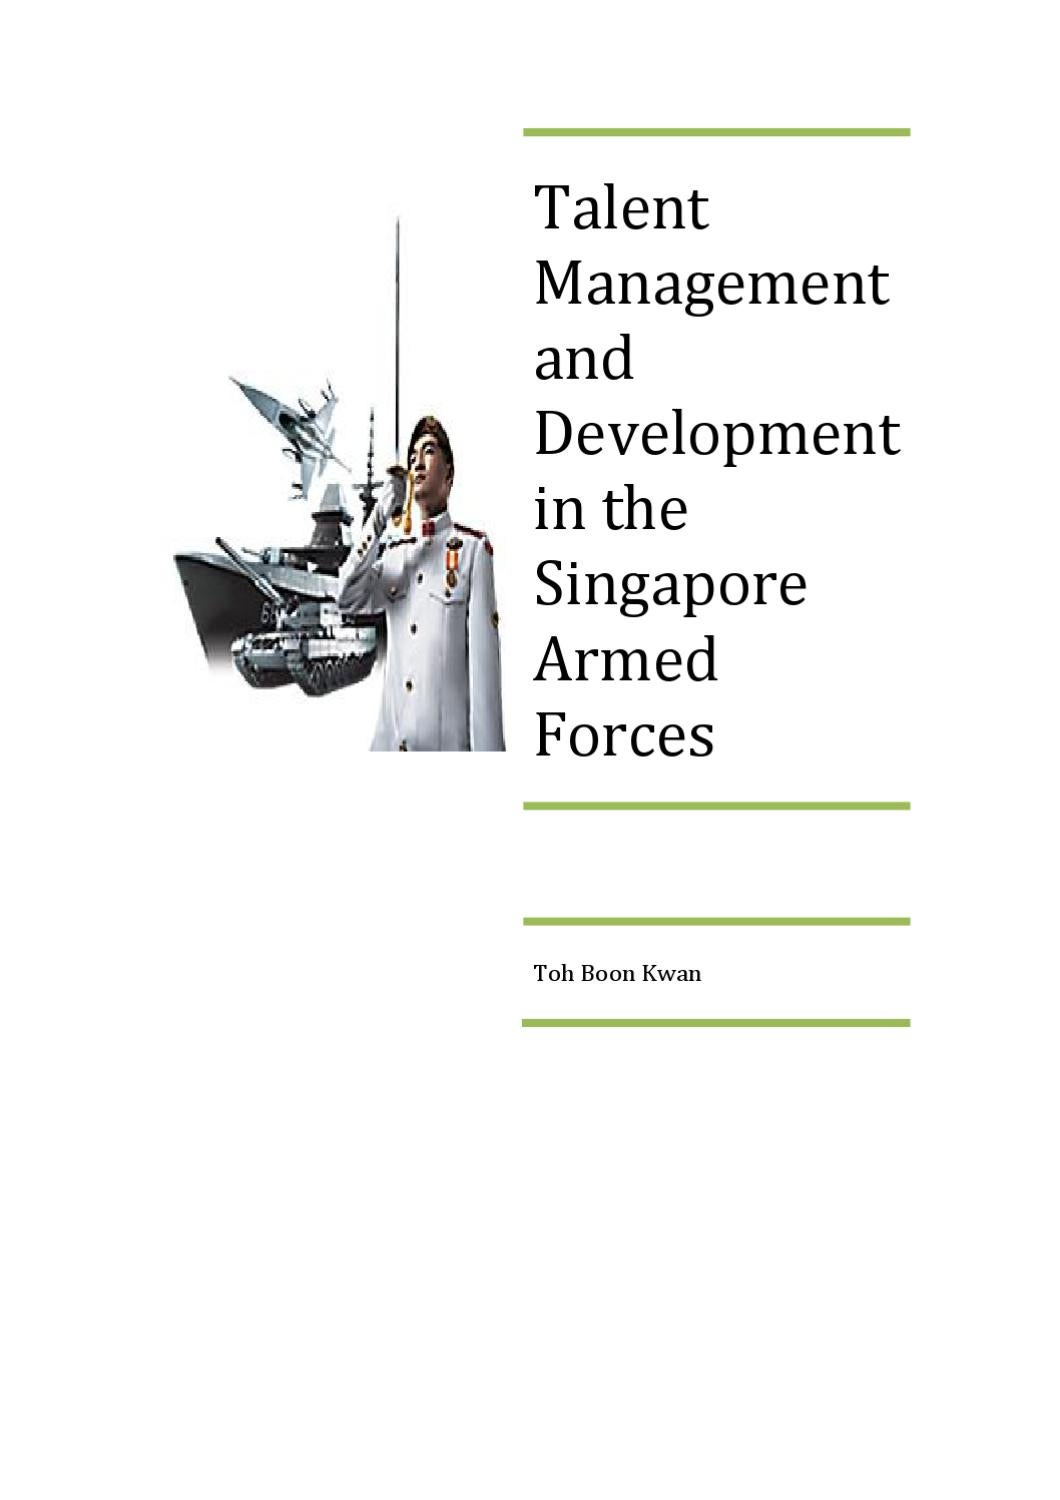 Talent Management and Development in the Singapore Armed